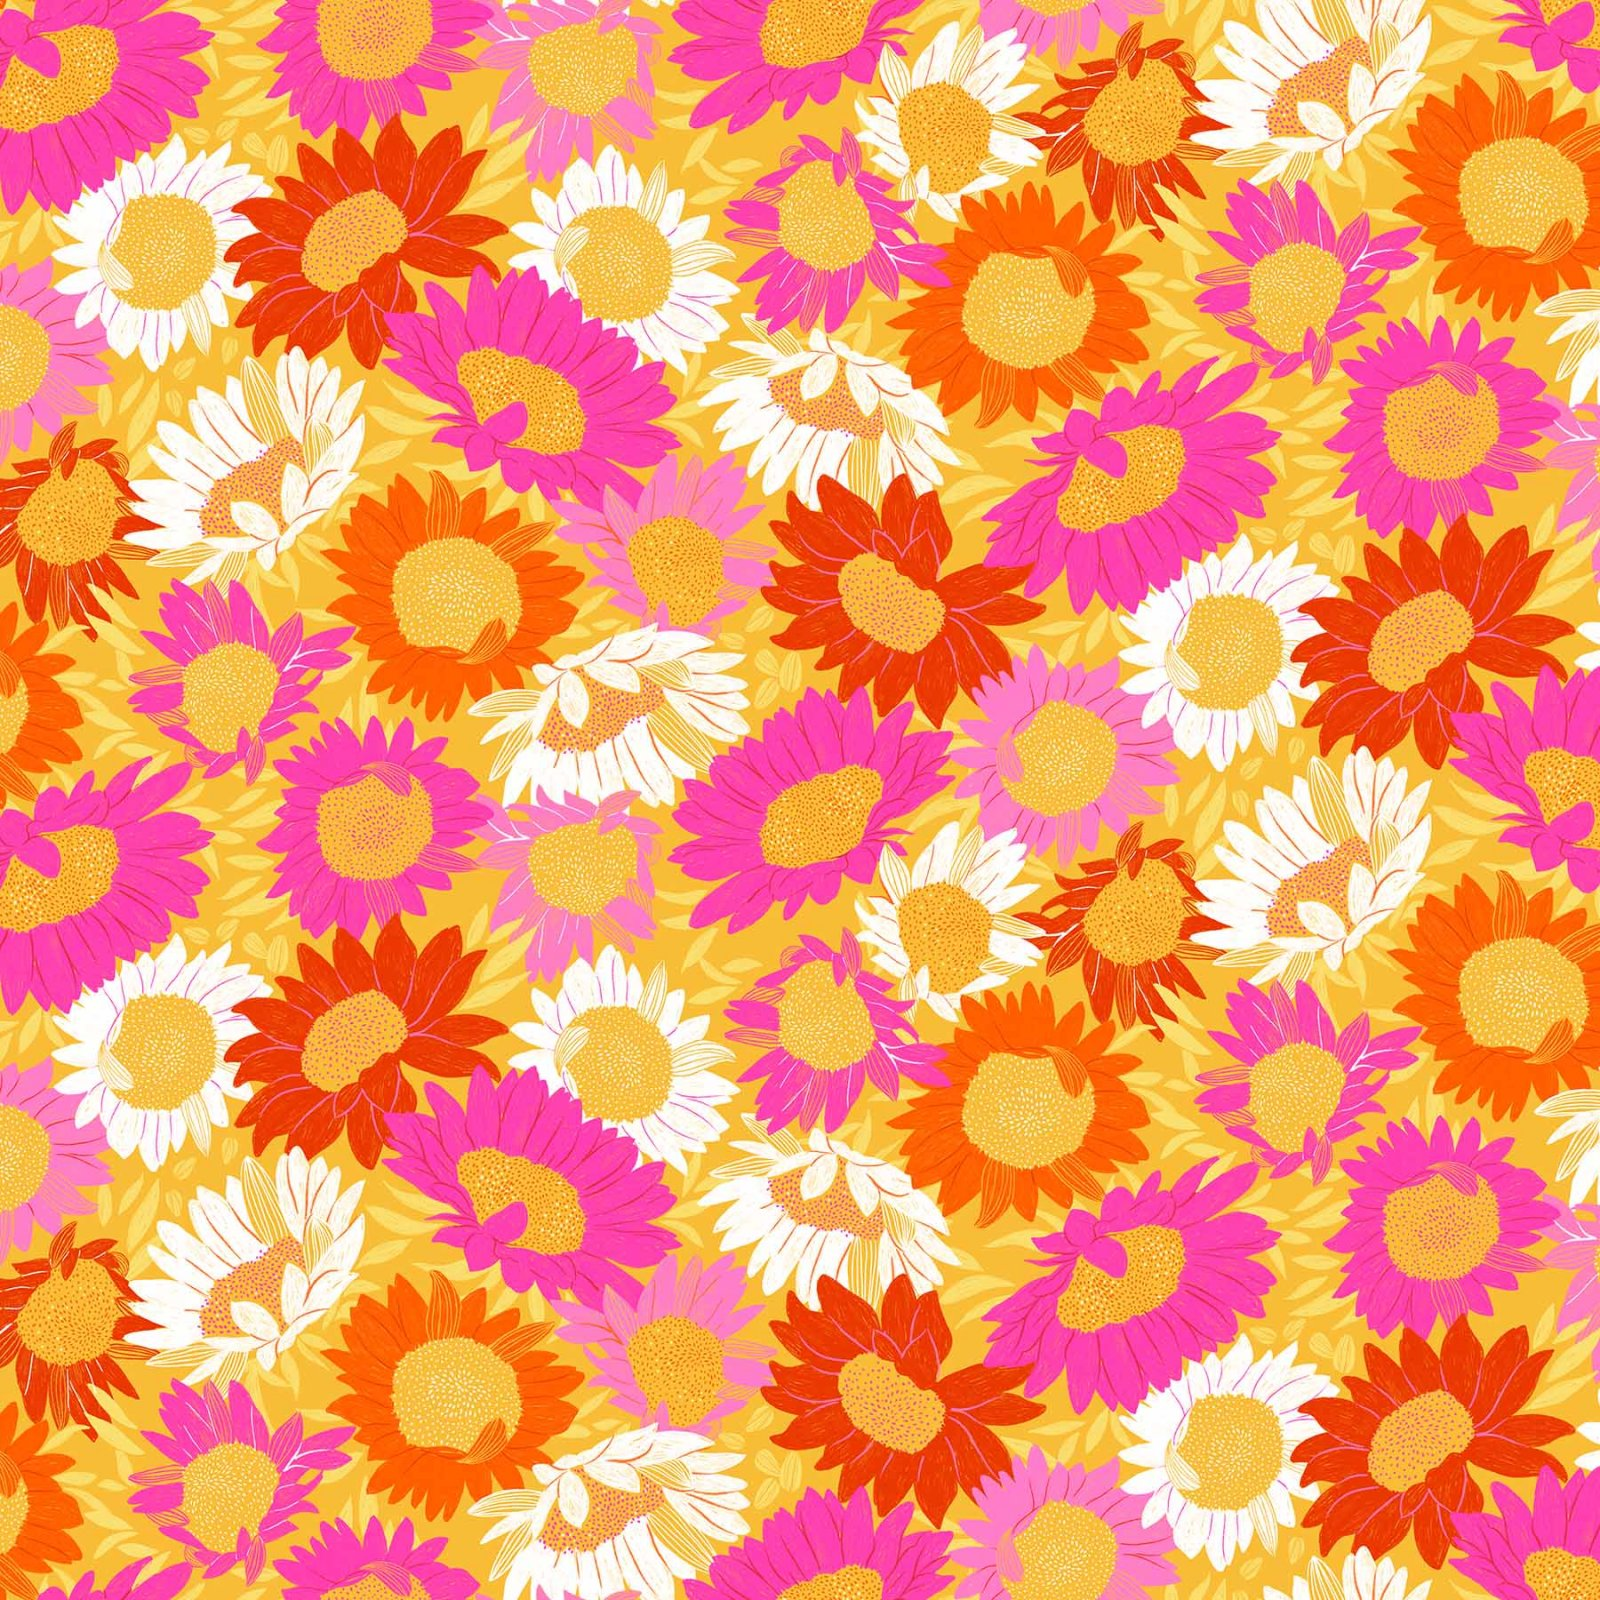 Flora Sunflowers Pink/Orange